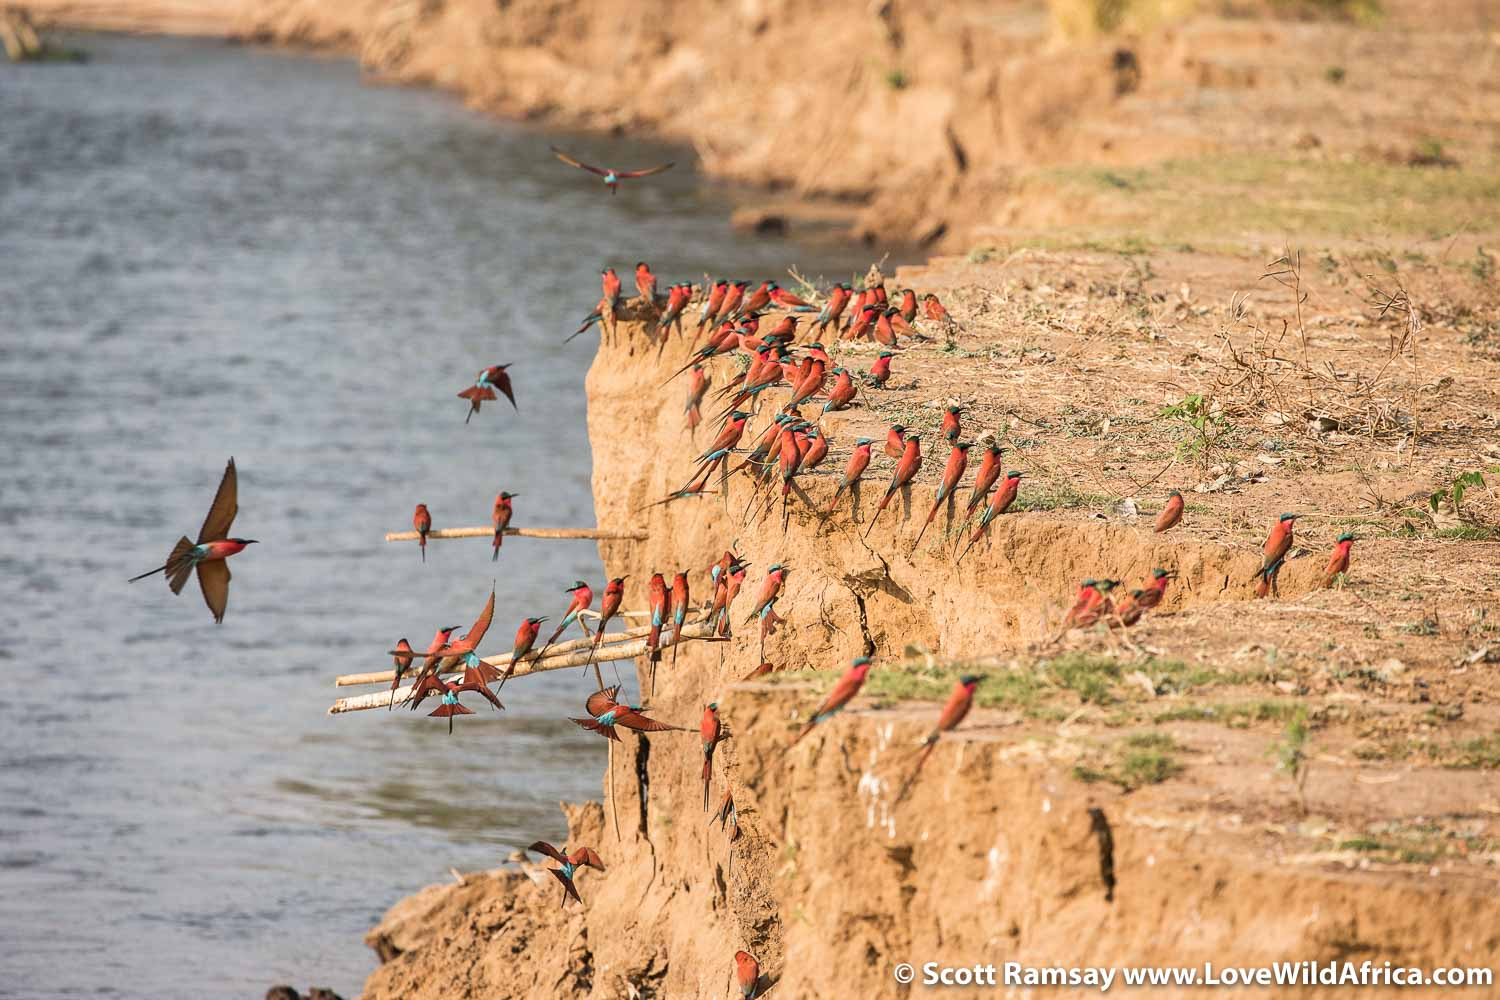 Southern carmine bee-eaters nest in the sandbanks of the Zambezi River.